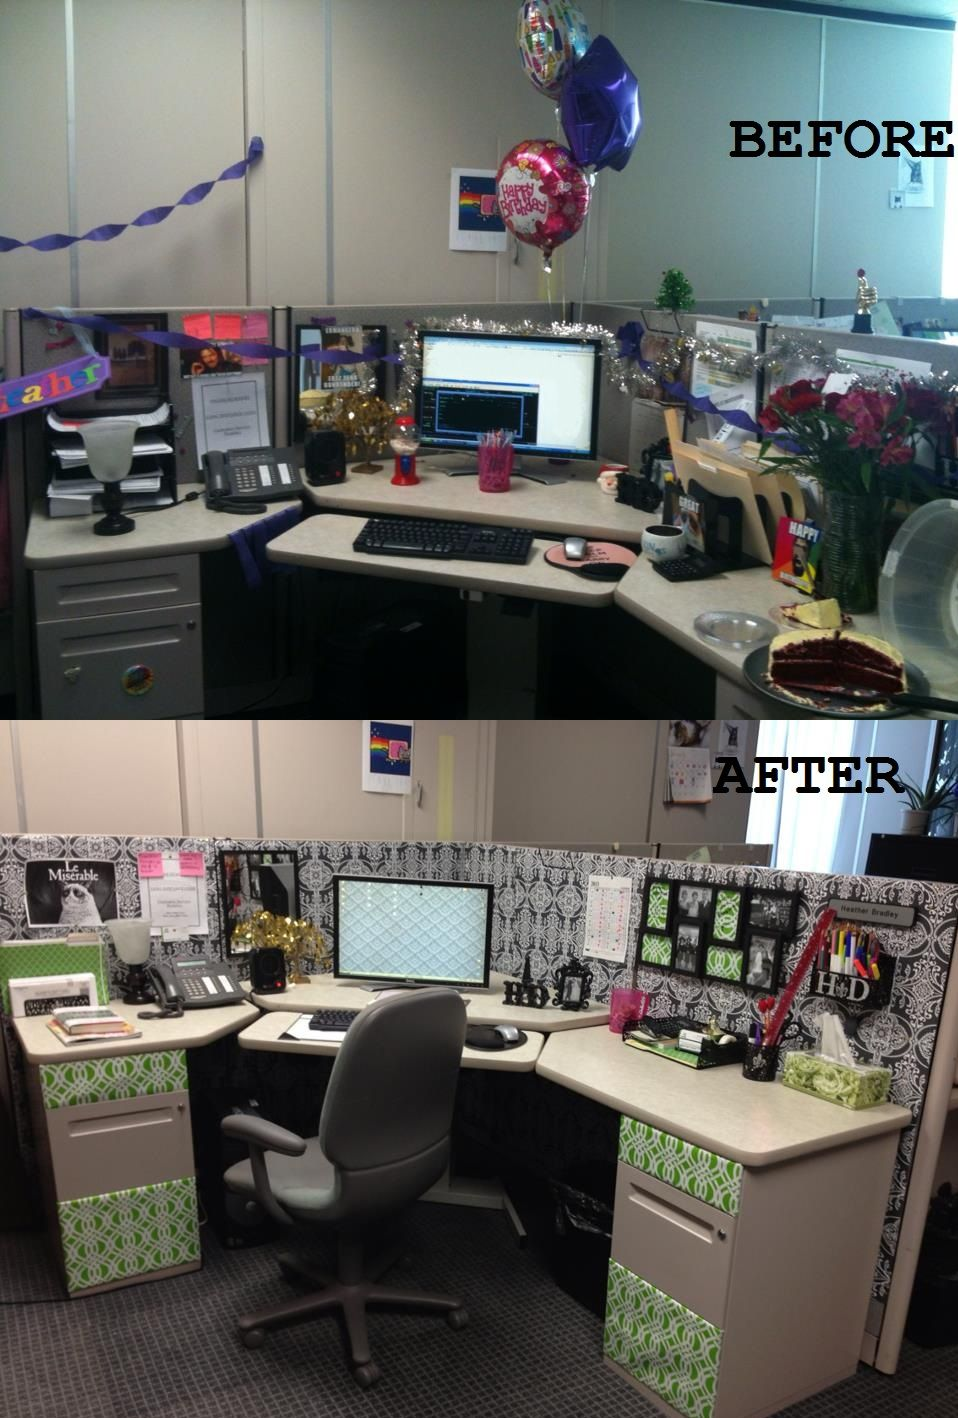 Cubicle Before And After Redecoration First Picture Taken